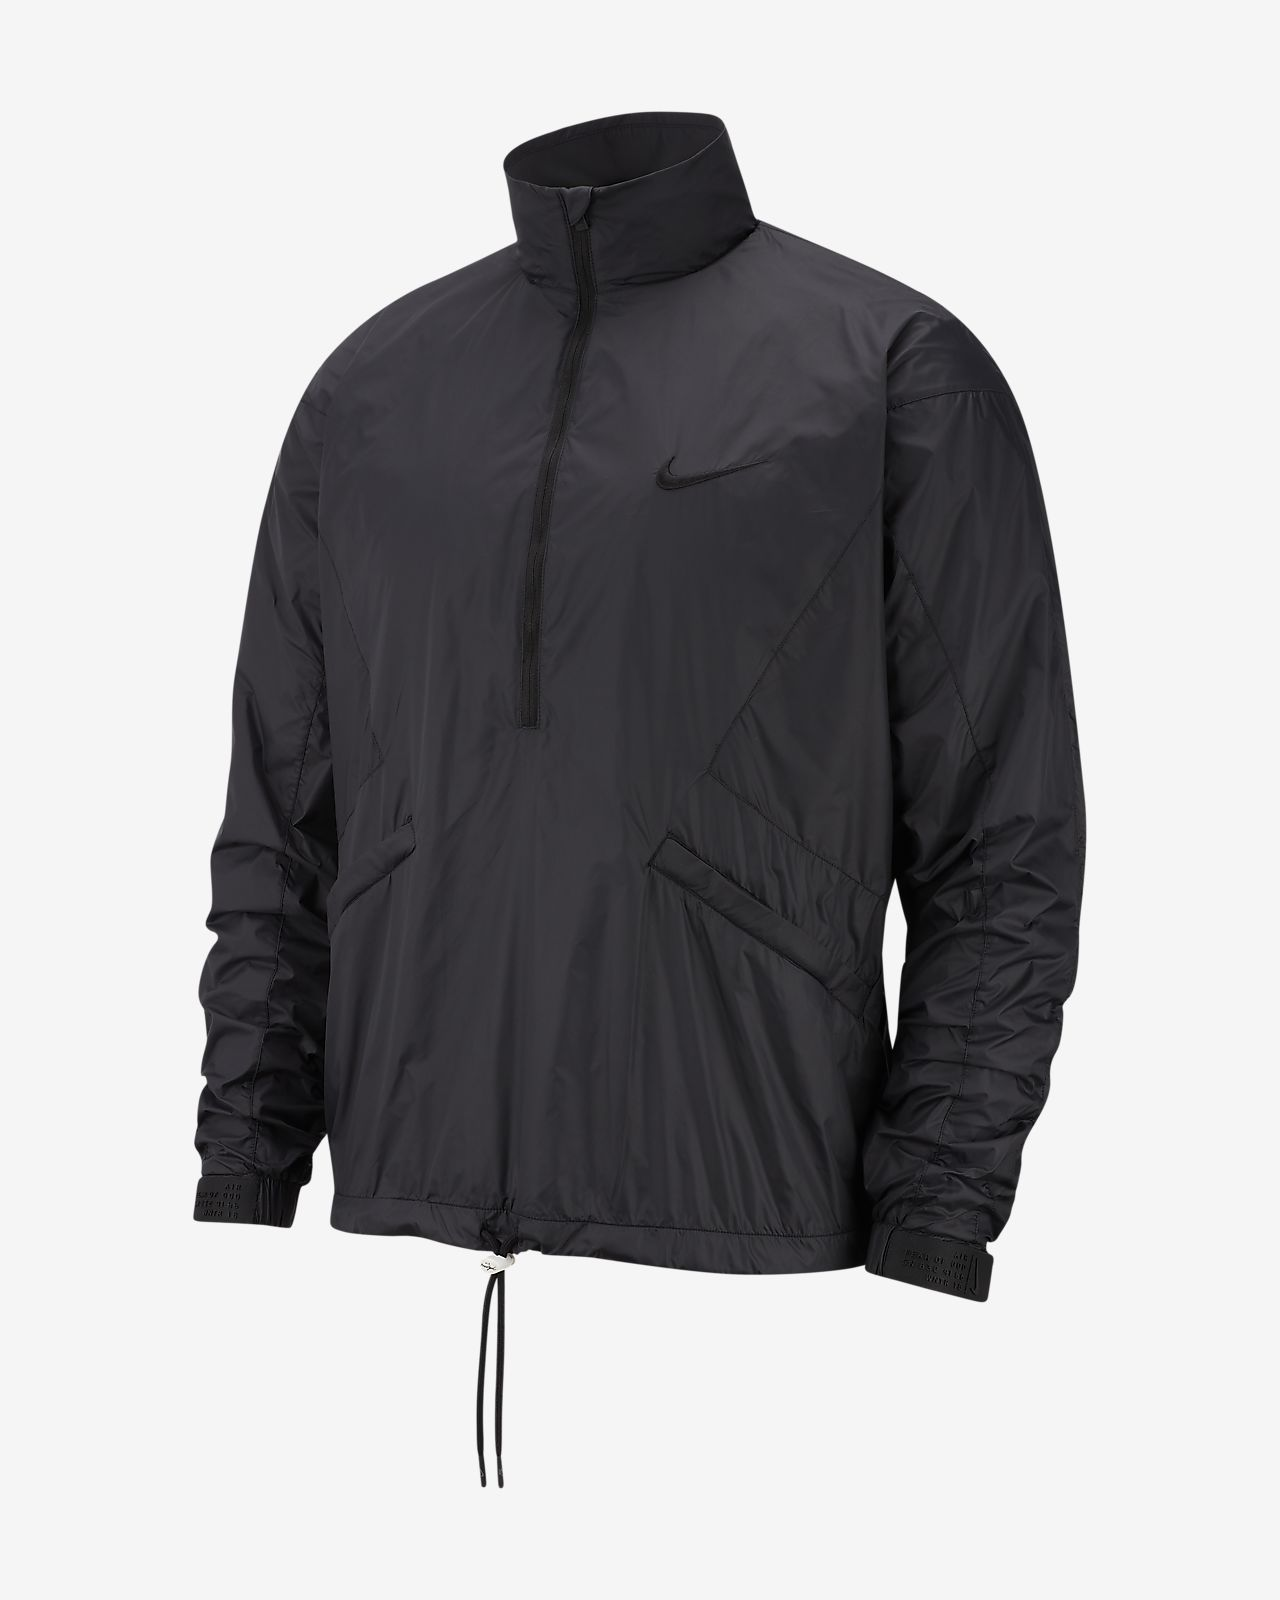 Nike x Fear of God Men's 1/2-Zip Jacket